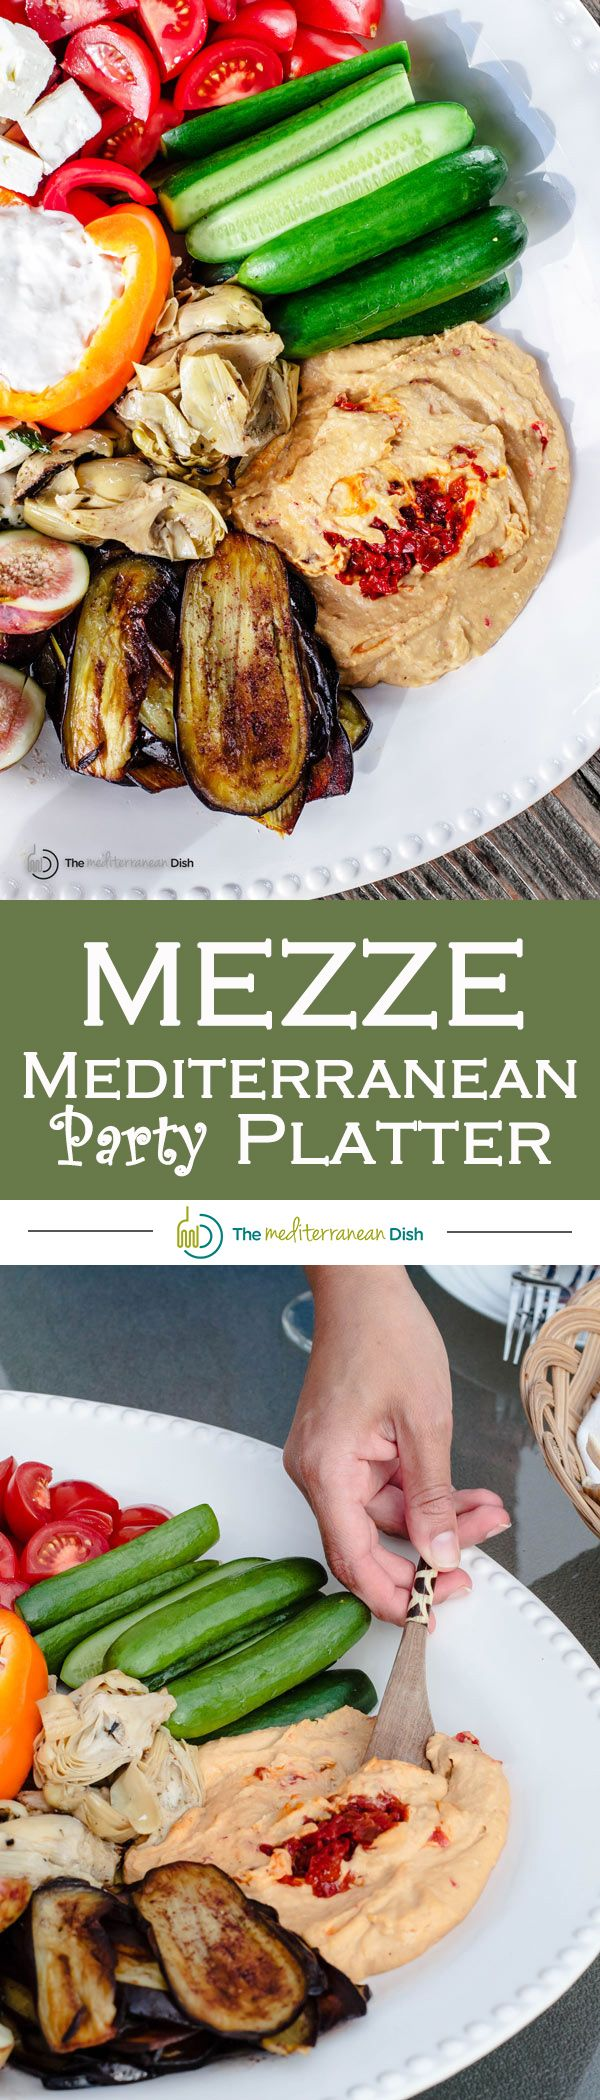 Mezze: How to Build the Perfect Mediterranean Party Platter | The Mediterranean Dish. Ditch those tired and boring party platters and try this platter with Mediterranean mezze favorites like hummus, fresh veggies, roasted eggplants, artichokes, olives, cheeses and more! Mostly prepared store-bought items! Pin it for your next party!